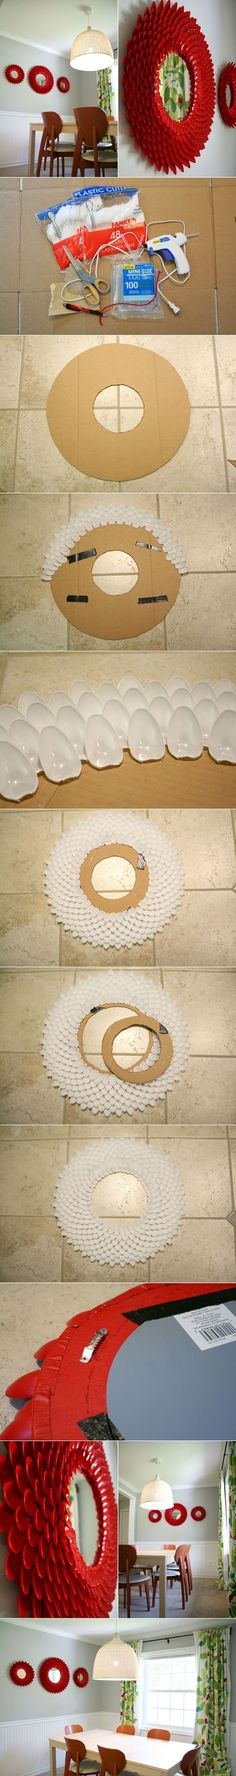 DIY Decorative Chrysanthemum Mirror with Plastic Spoons